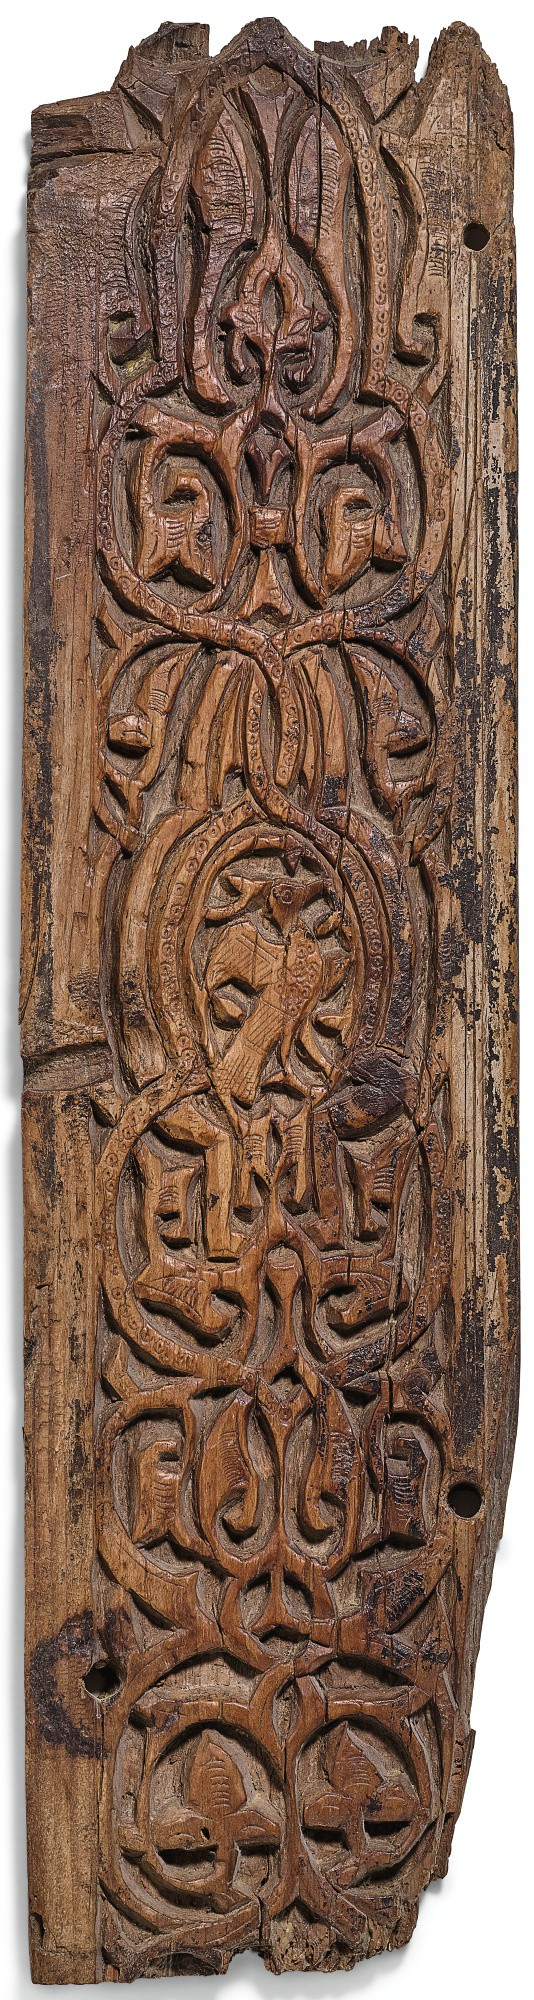 A FATIMID CARVED WOOD PANEL, PROBABLY FROM A PORTAL, EGYPT, CAIRO, 11TH CENTURY